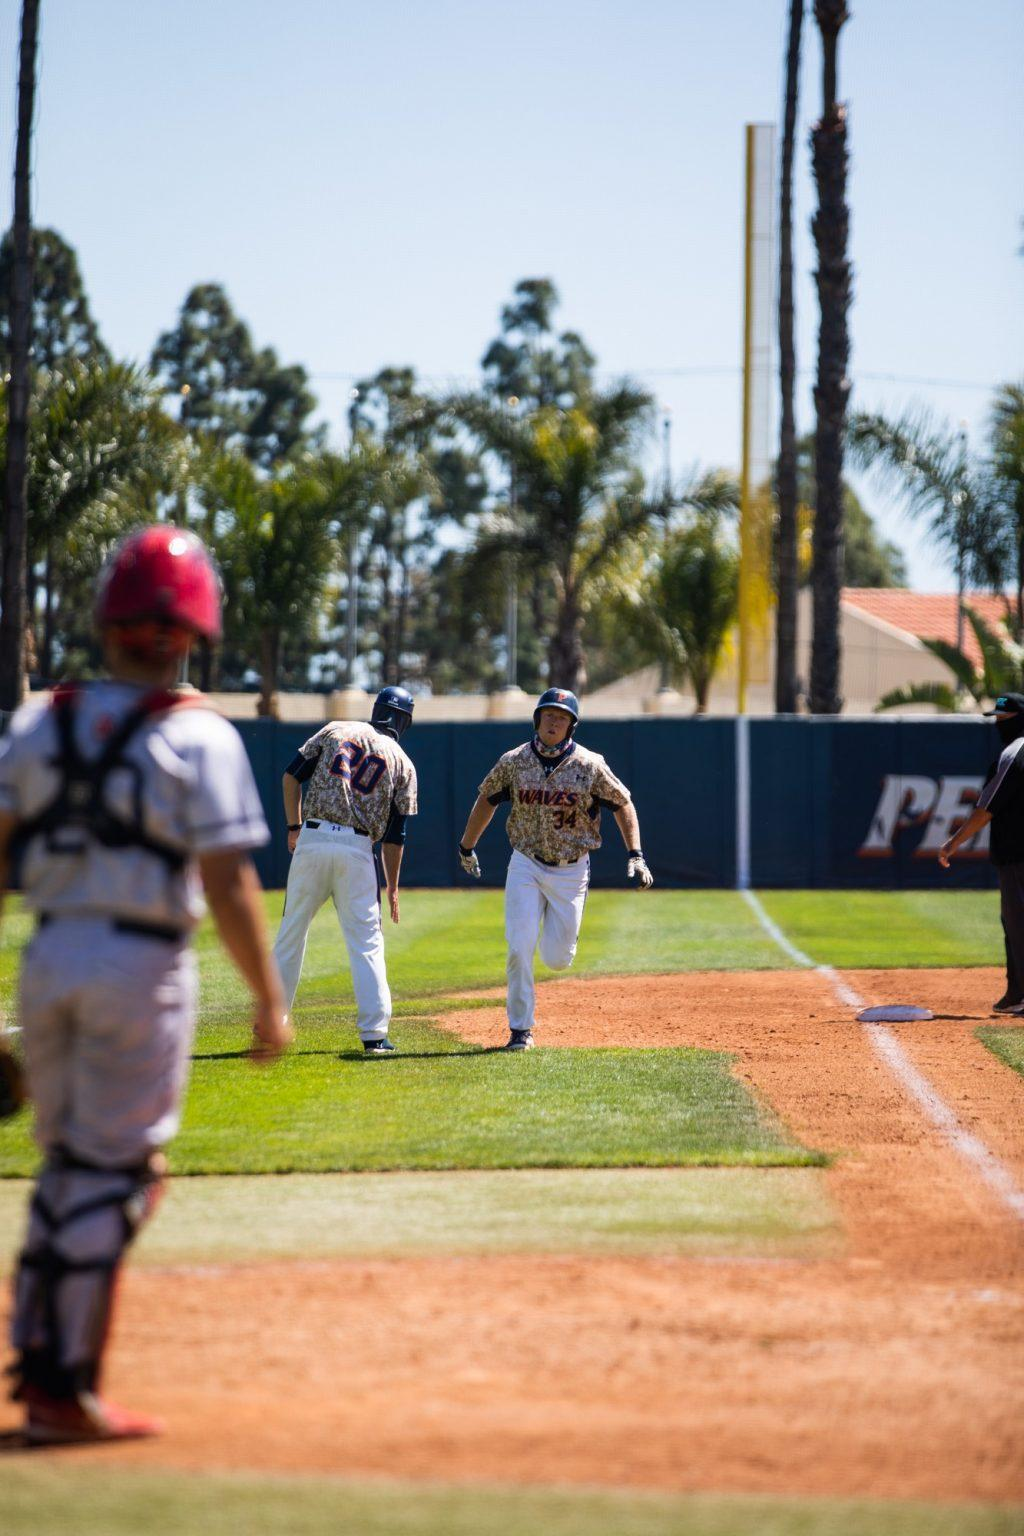 Pepperdine senior first baseman Justin Lutes rounds third after blasting a 375-foot home run to right field Saturday in Malibu. Lutes' homer put the Waves ahead 2-1 en route to a series-clinching 7-2 win.